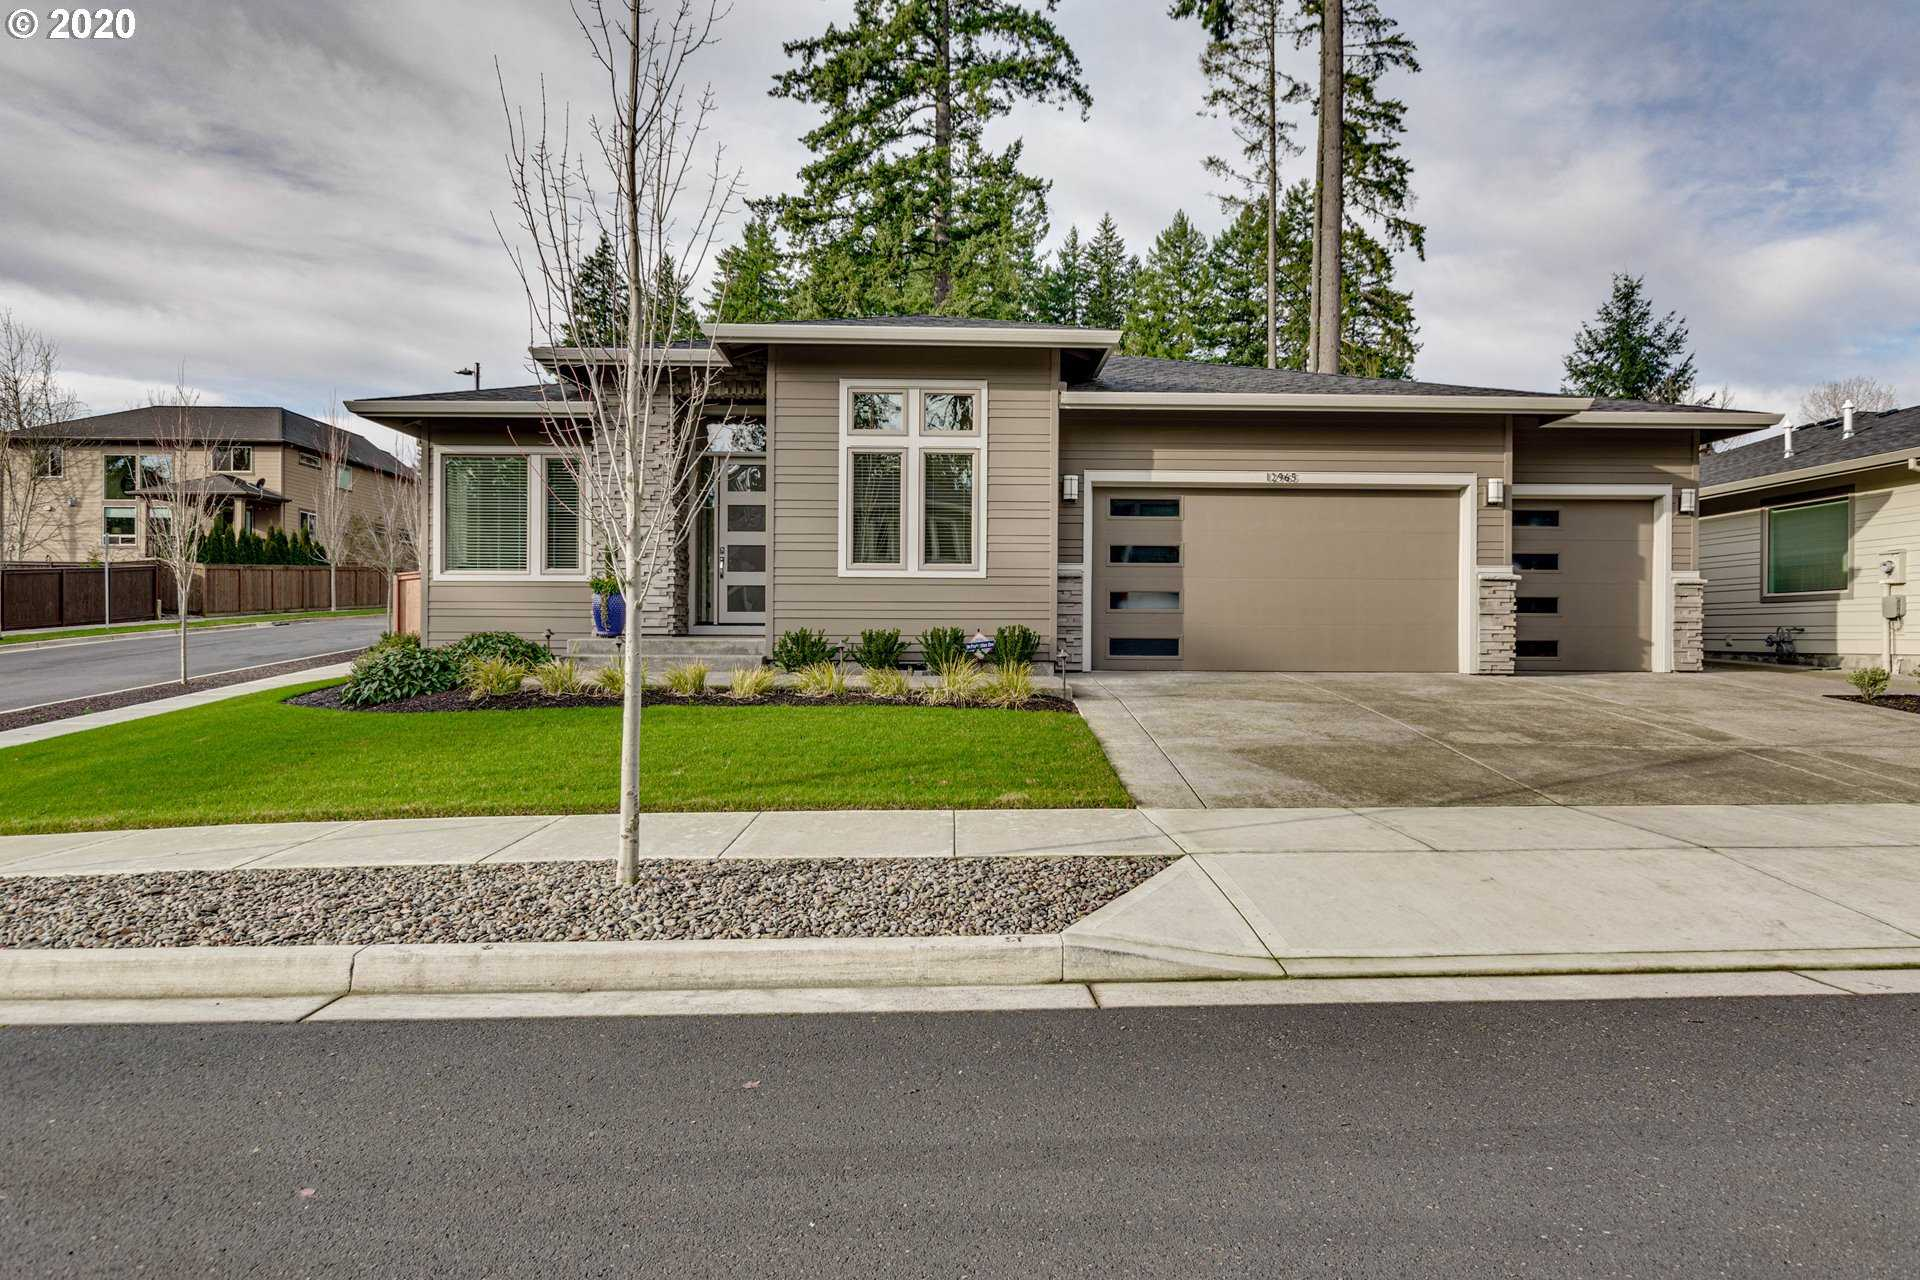 $749,500 - 4Br/3Ba -  for Sale in Olson Woods, Tigard